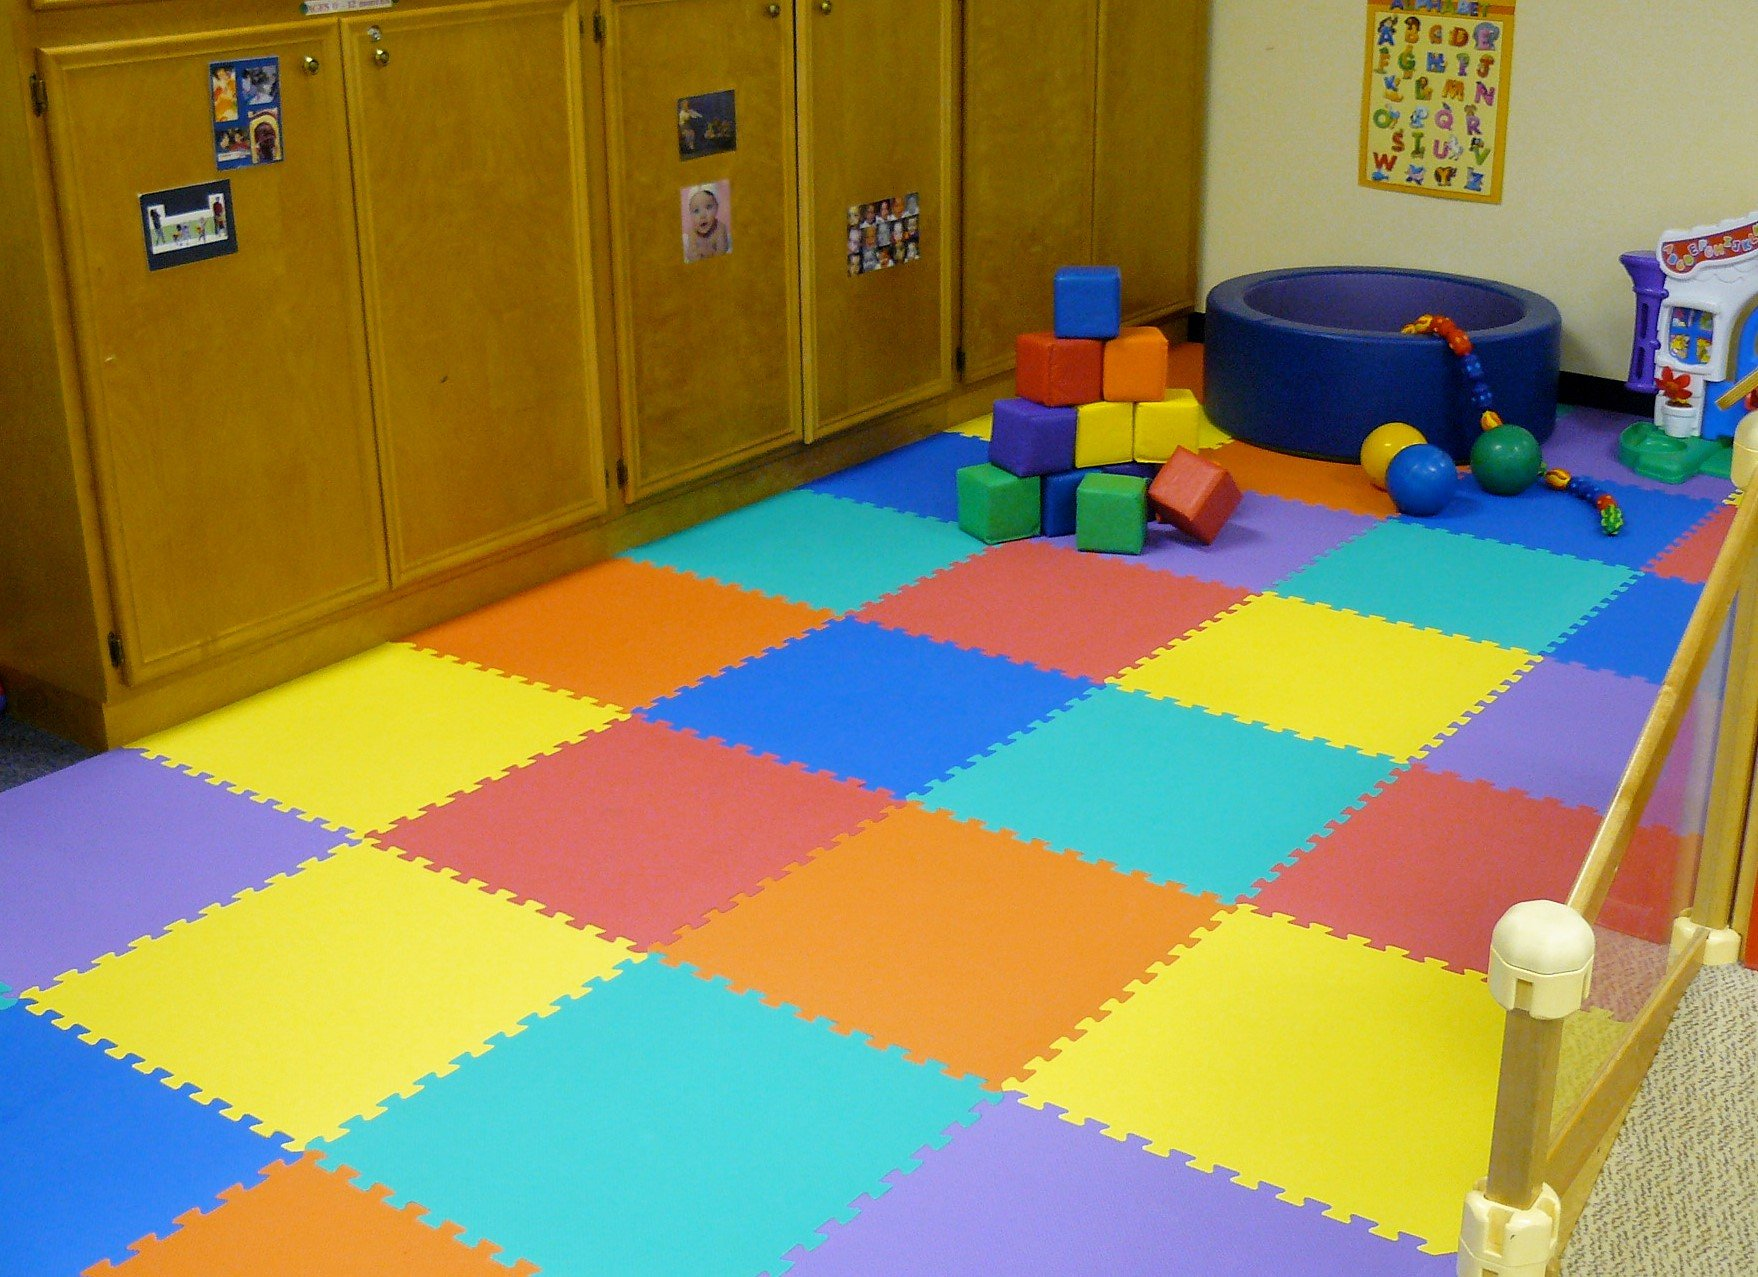 We Sell Mats 1/2-inch Multi-Purpose, Hunter Green, 16 Sq Ft (4 Tiles) by We Sell Mats (Image #8)